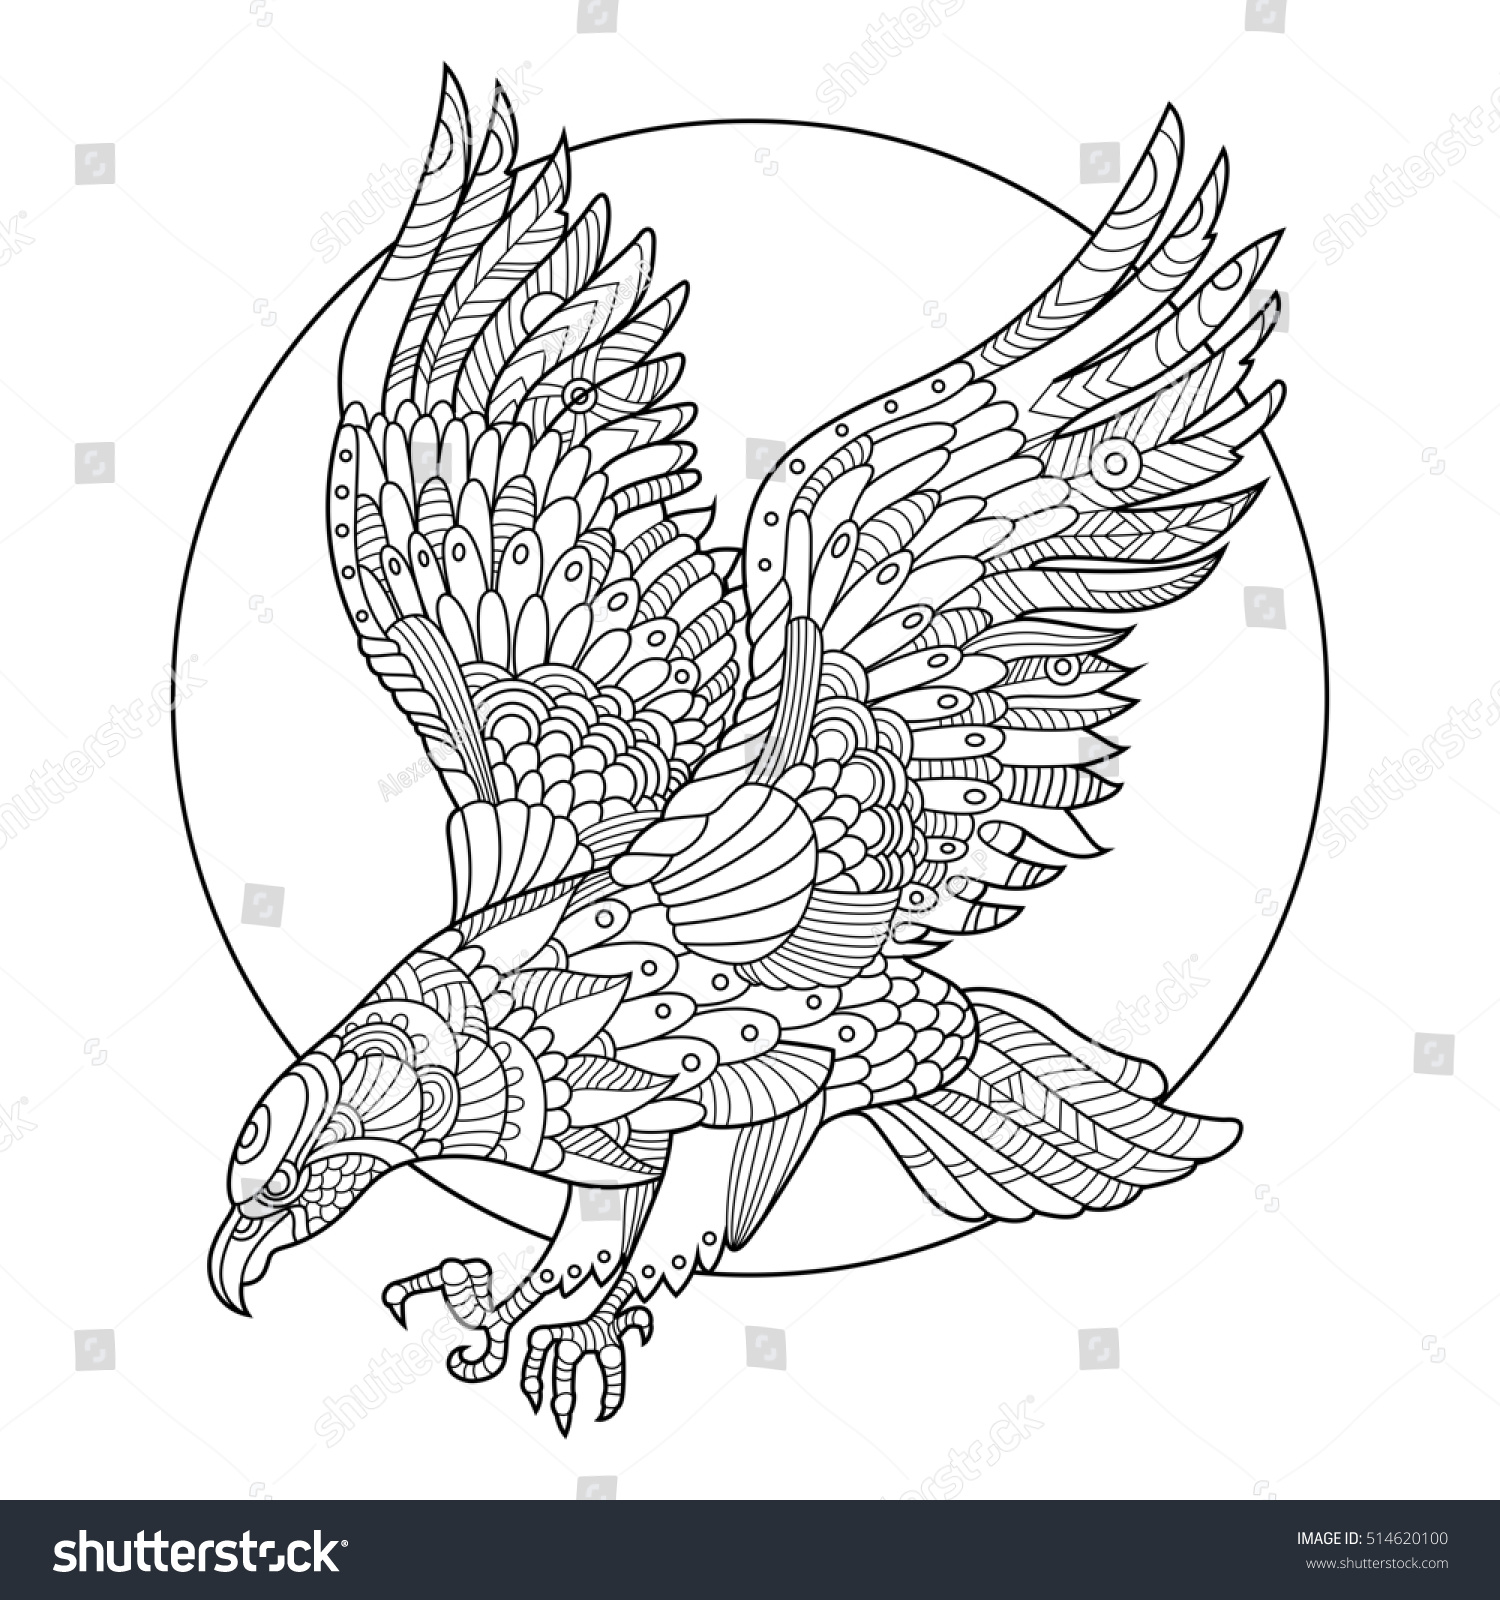 Eagle bird coloring book for adults raster illustration. Anti-stress ...